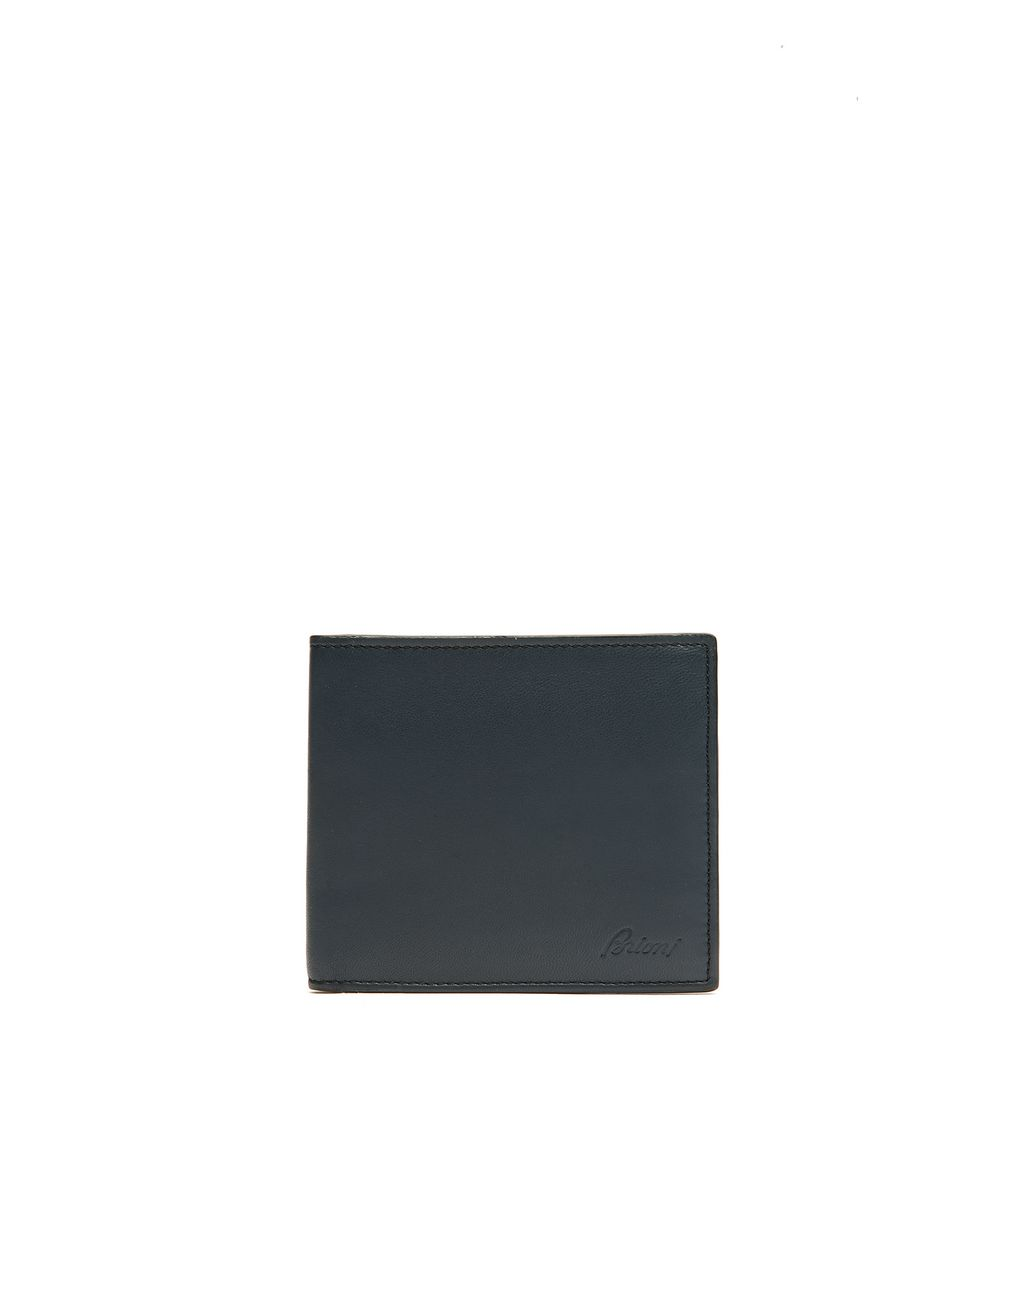 BRIONI Black Wallet Leather Goods Man f